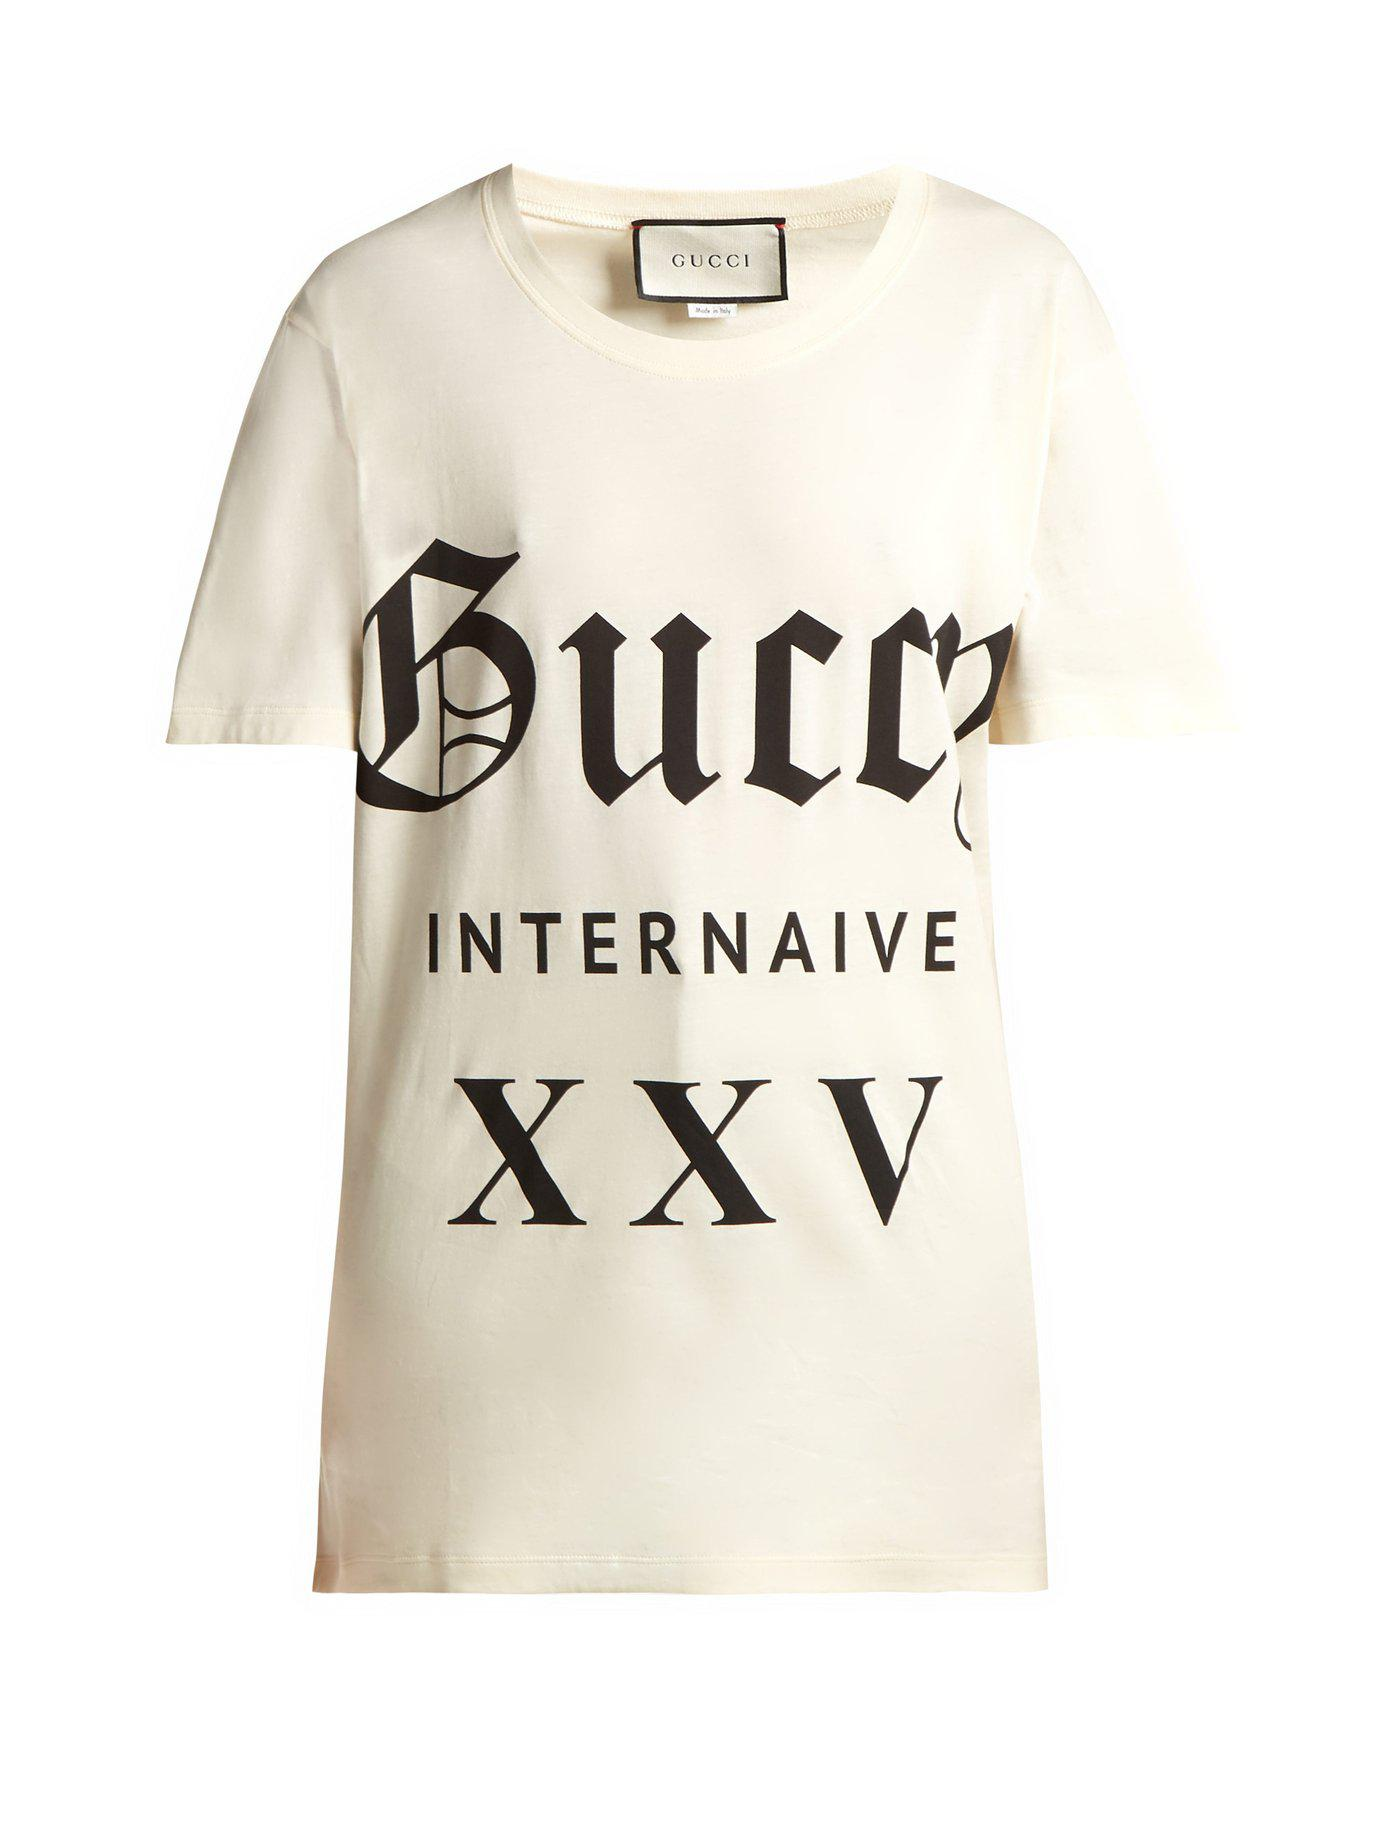 3d60878fa24 Gucci - White Printed Cotton Jersey T Shirt - Lyst. View fullscreen